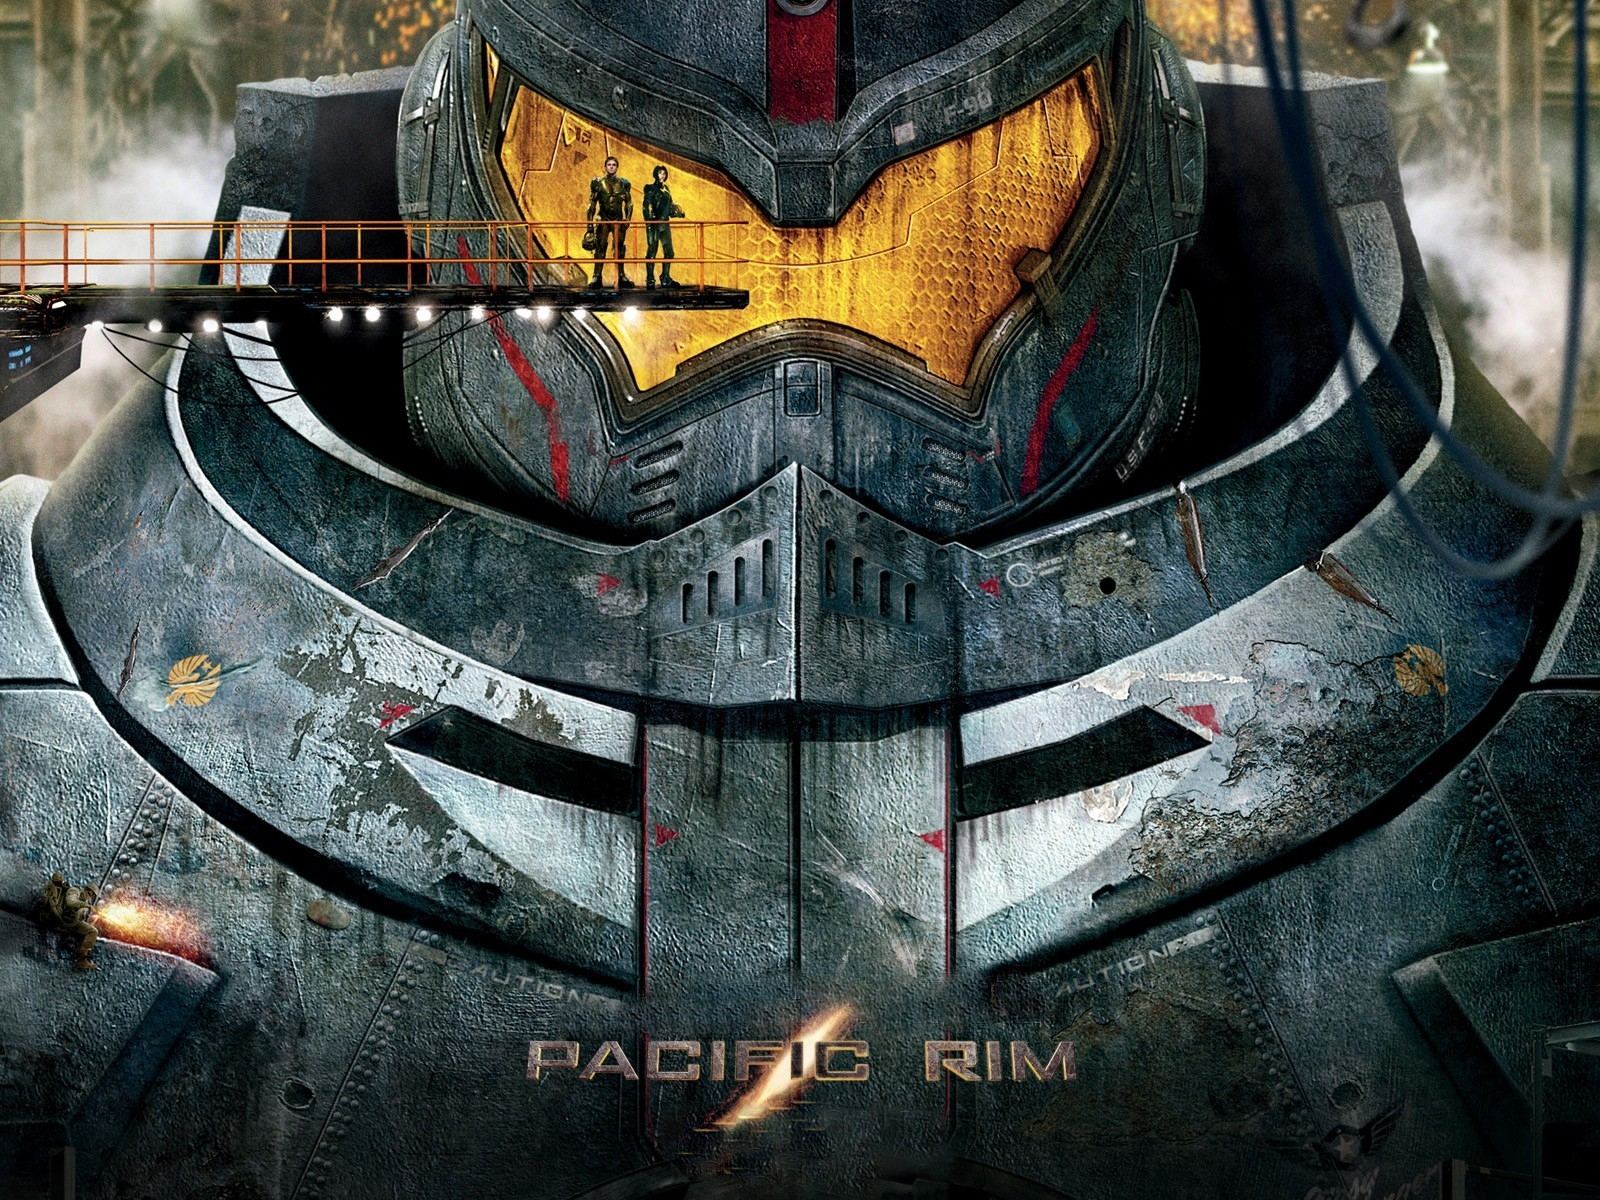 2013 Pacific Rim Film for 1600 x 1200 resolution